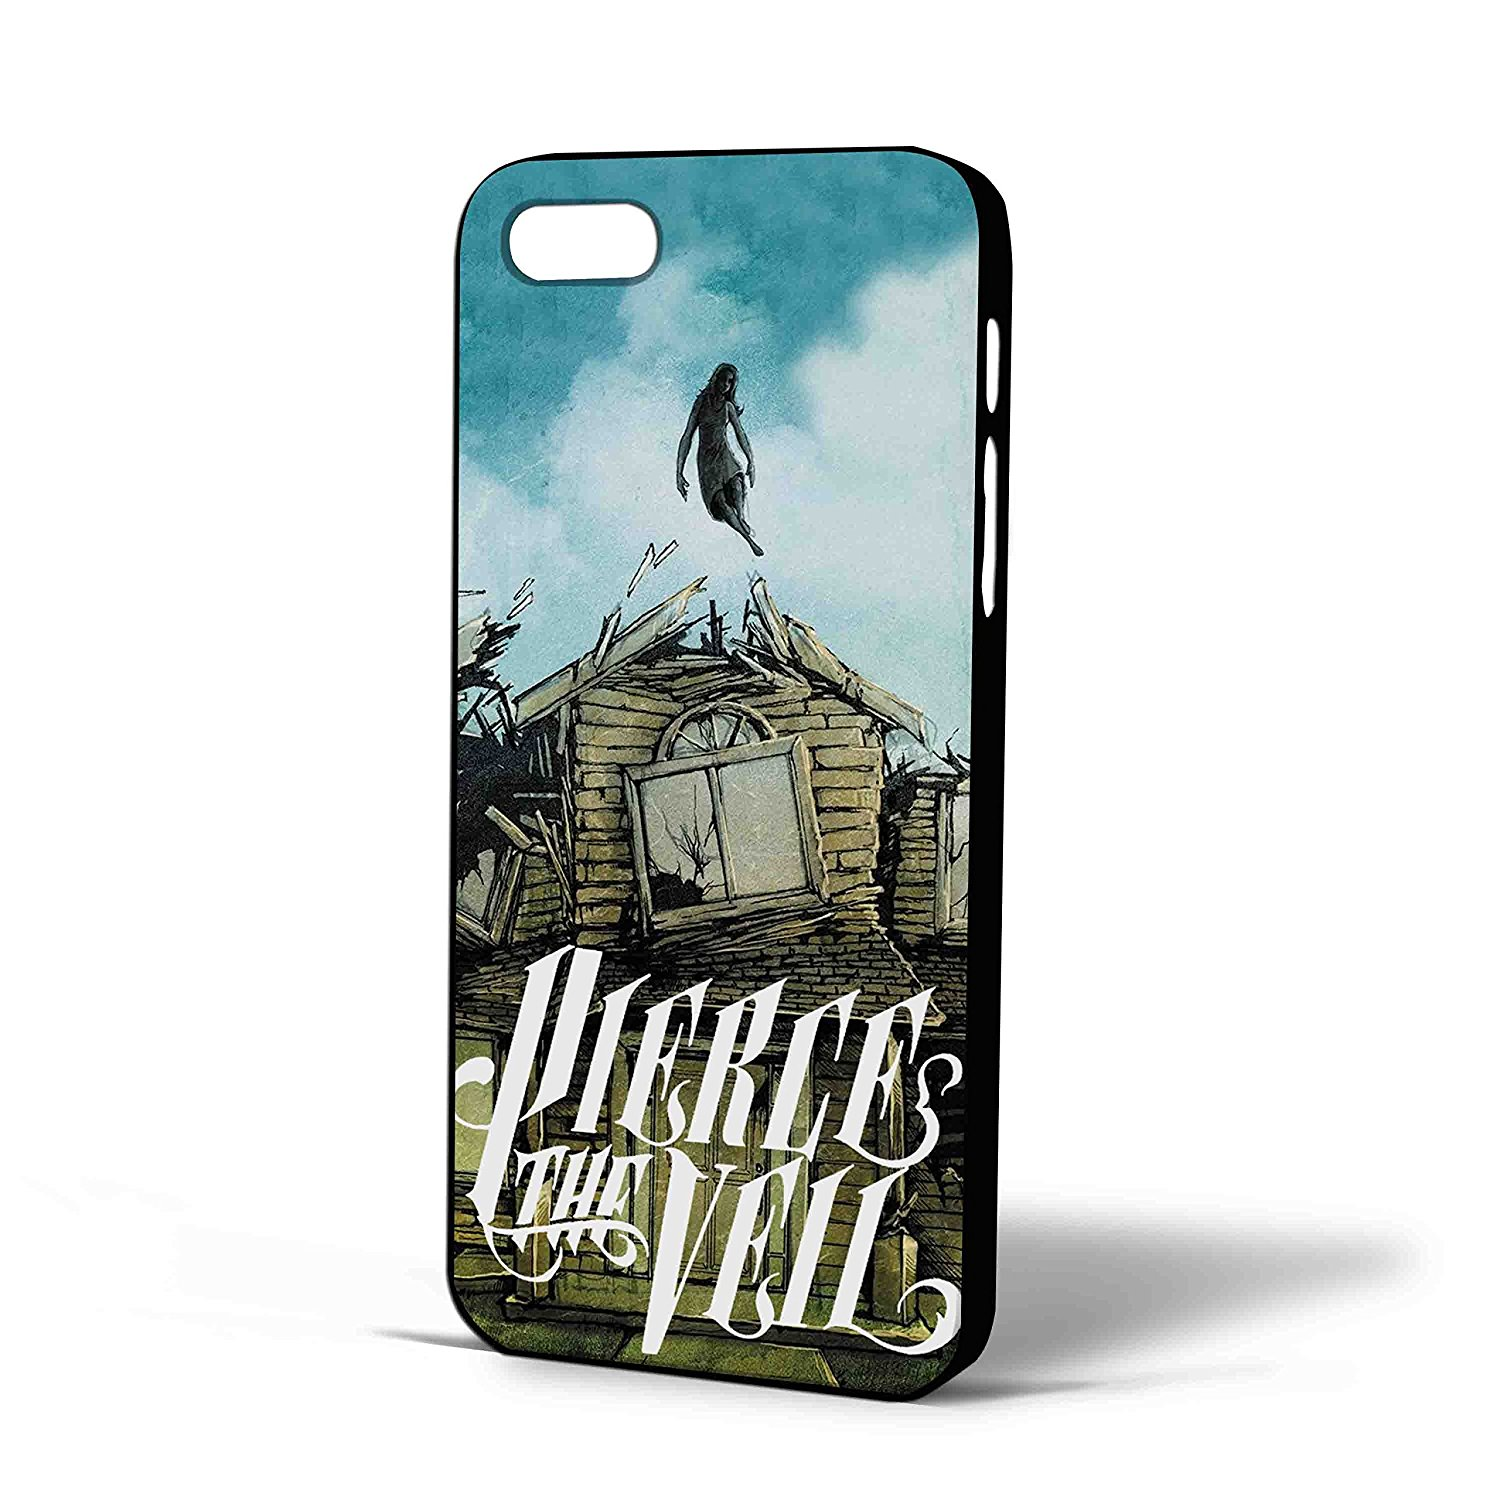 Ganma Pierce the Veil Cover Album Lyric Quote Case For iPhone Case (Case For iPhone 6 white)